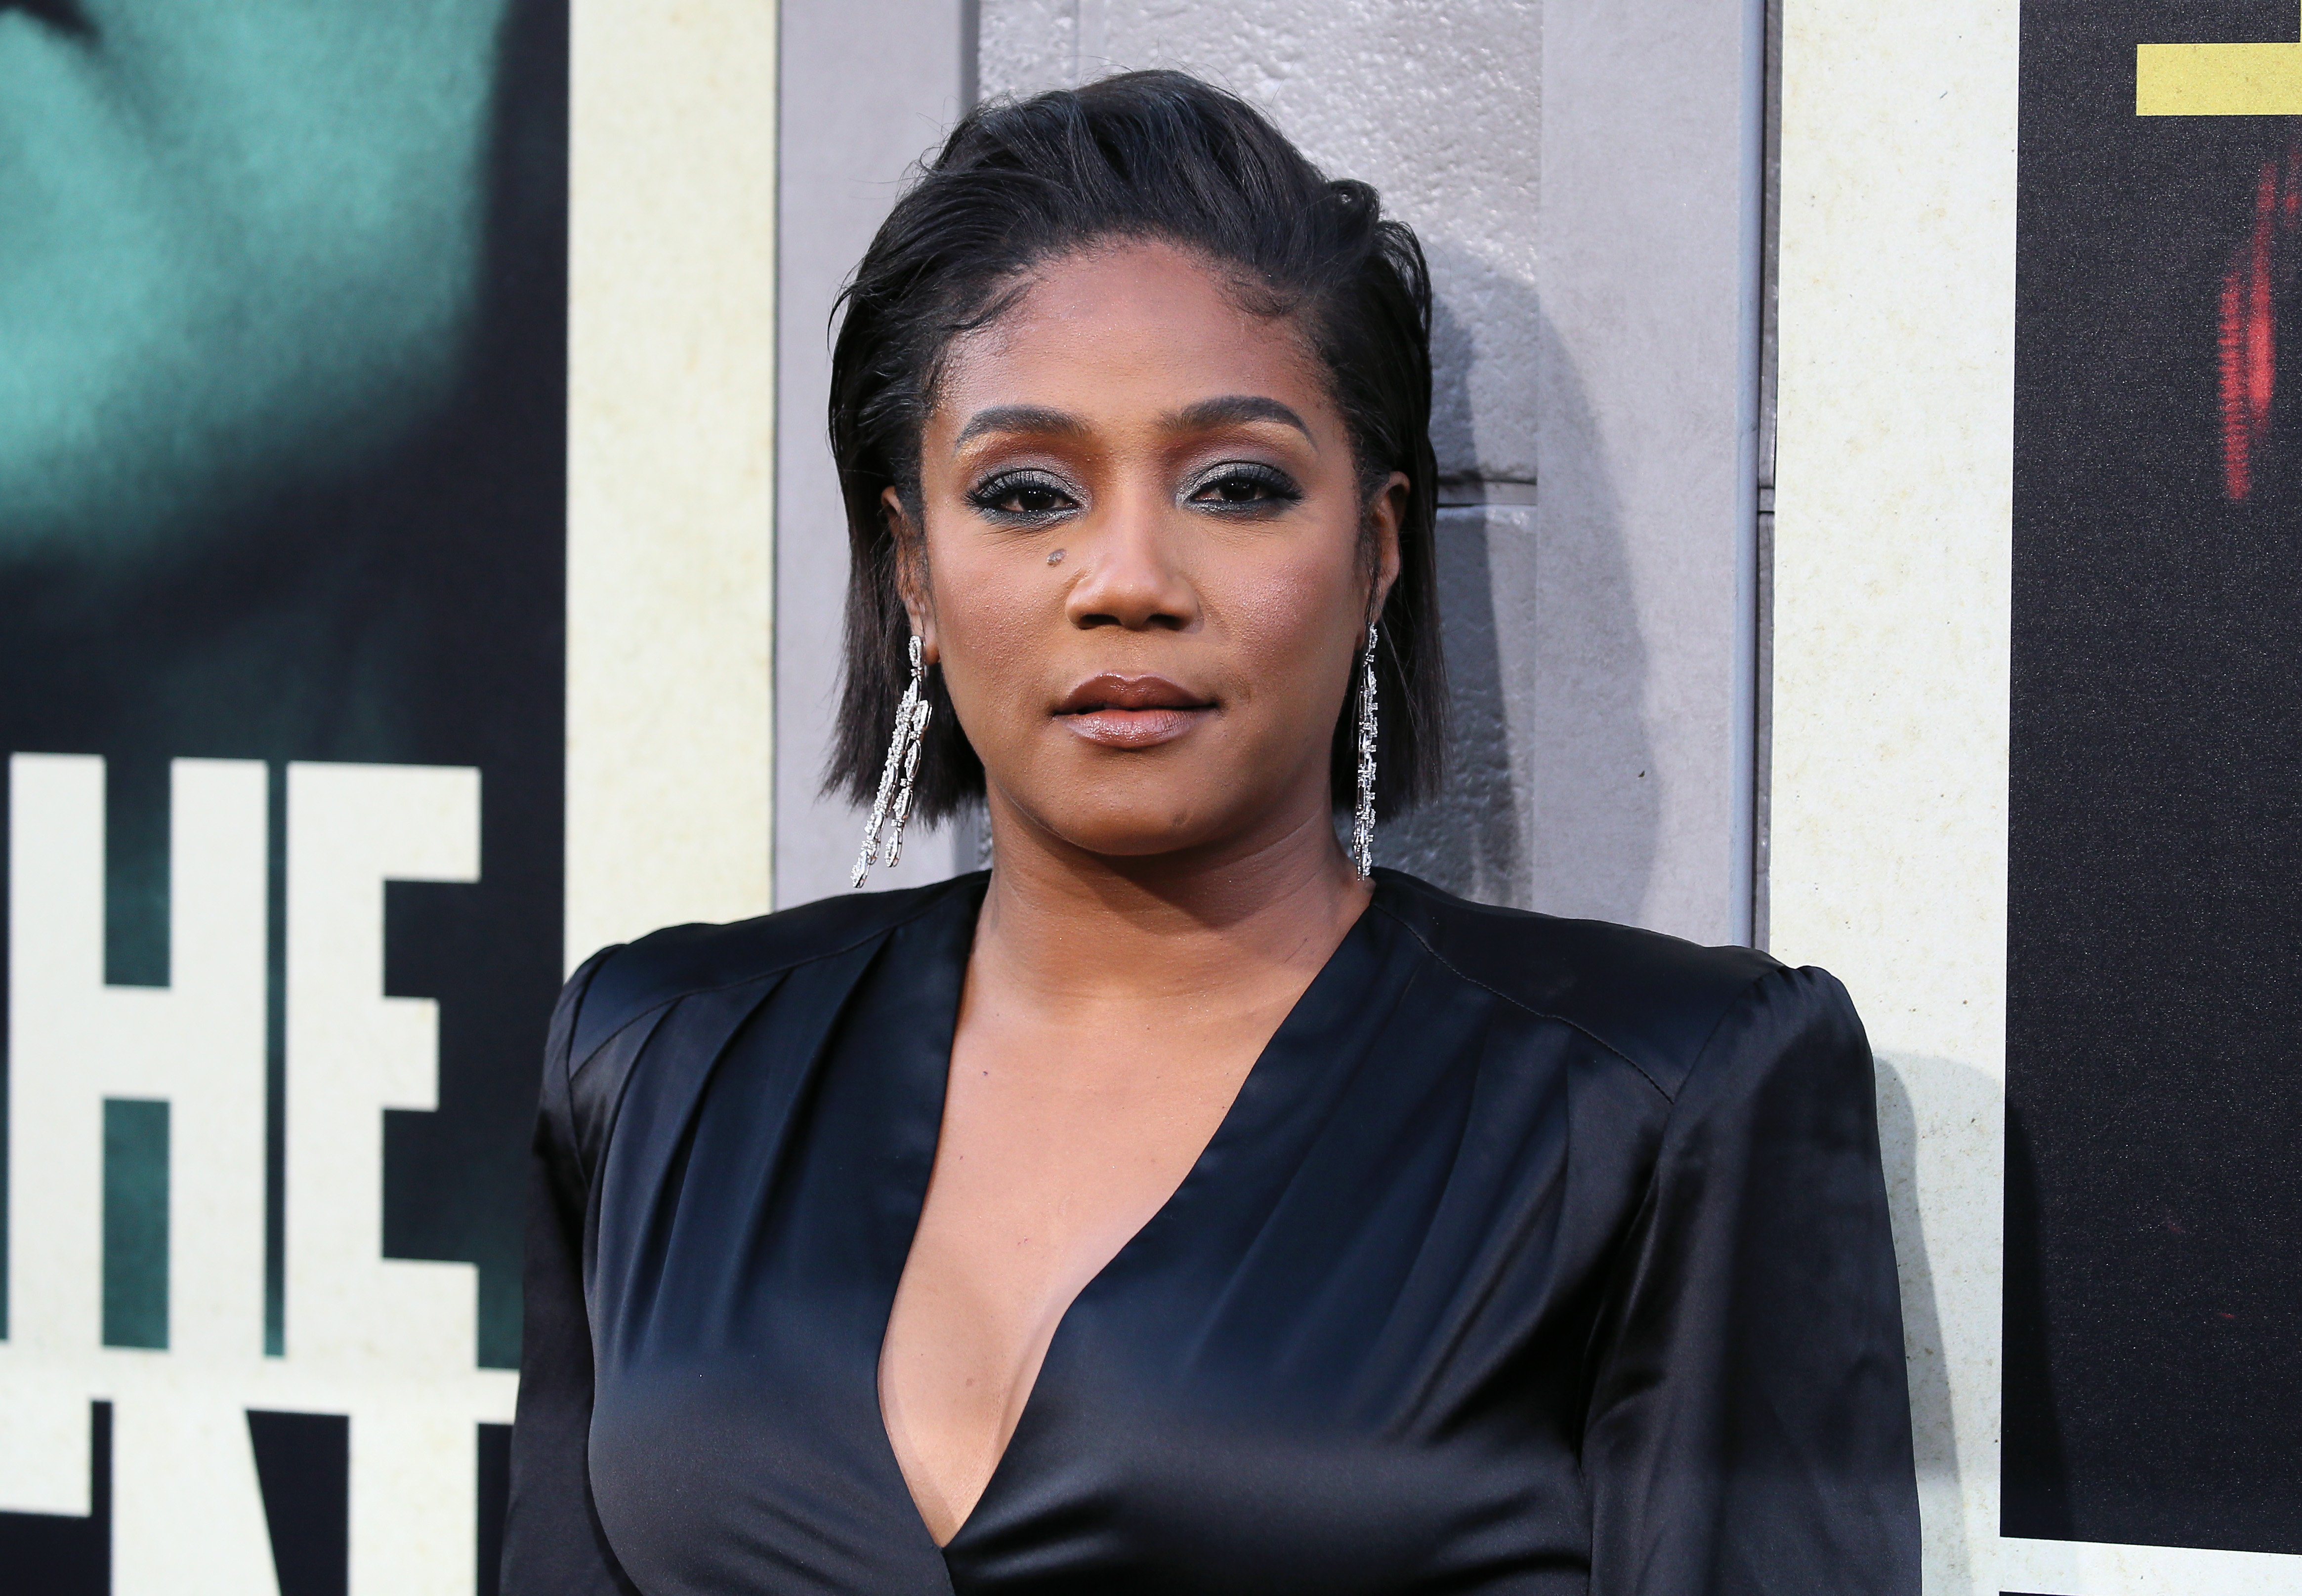 """Tiffany Haddish at the premiere of """"The Kitchen"""" at TCL Chinese Theatre on August 05, 2019 in Hollywood, California. 